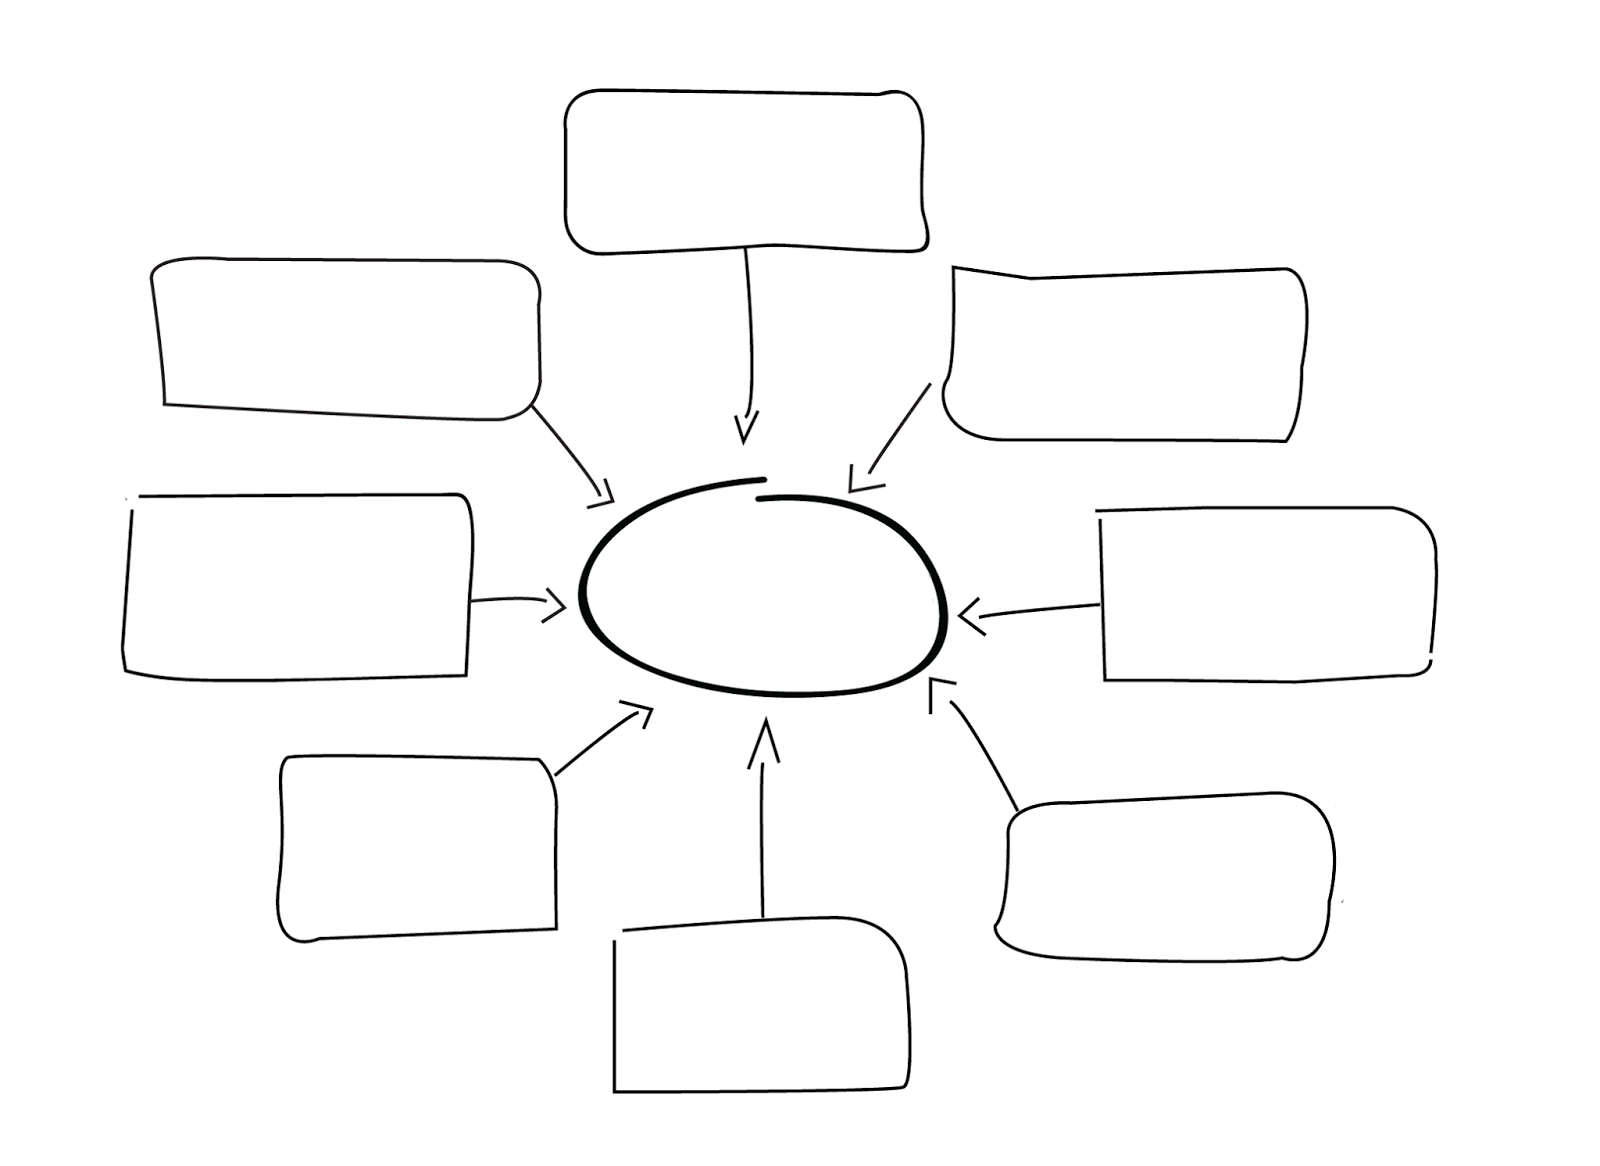 Spider diagram template - photo#1